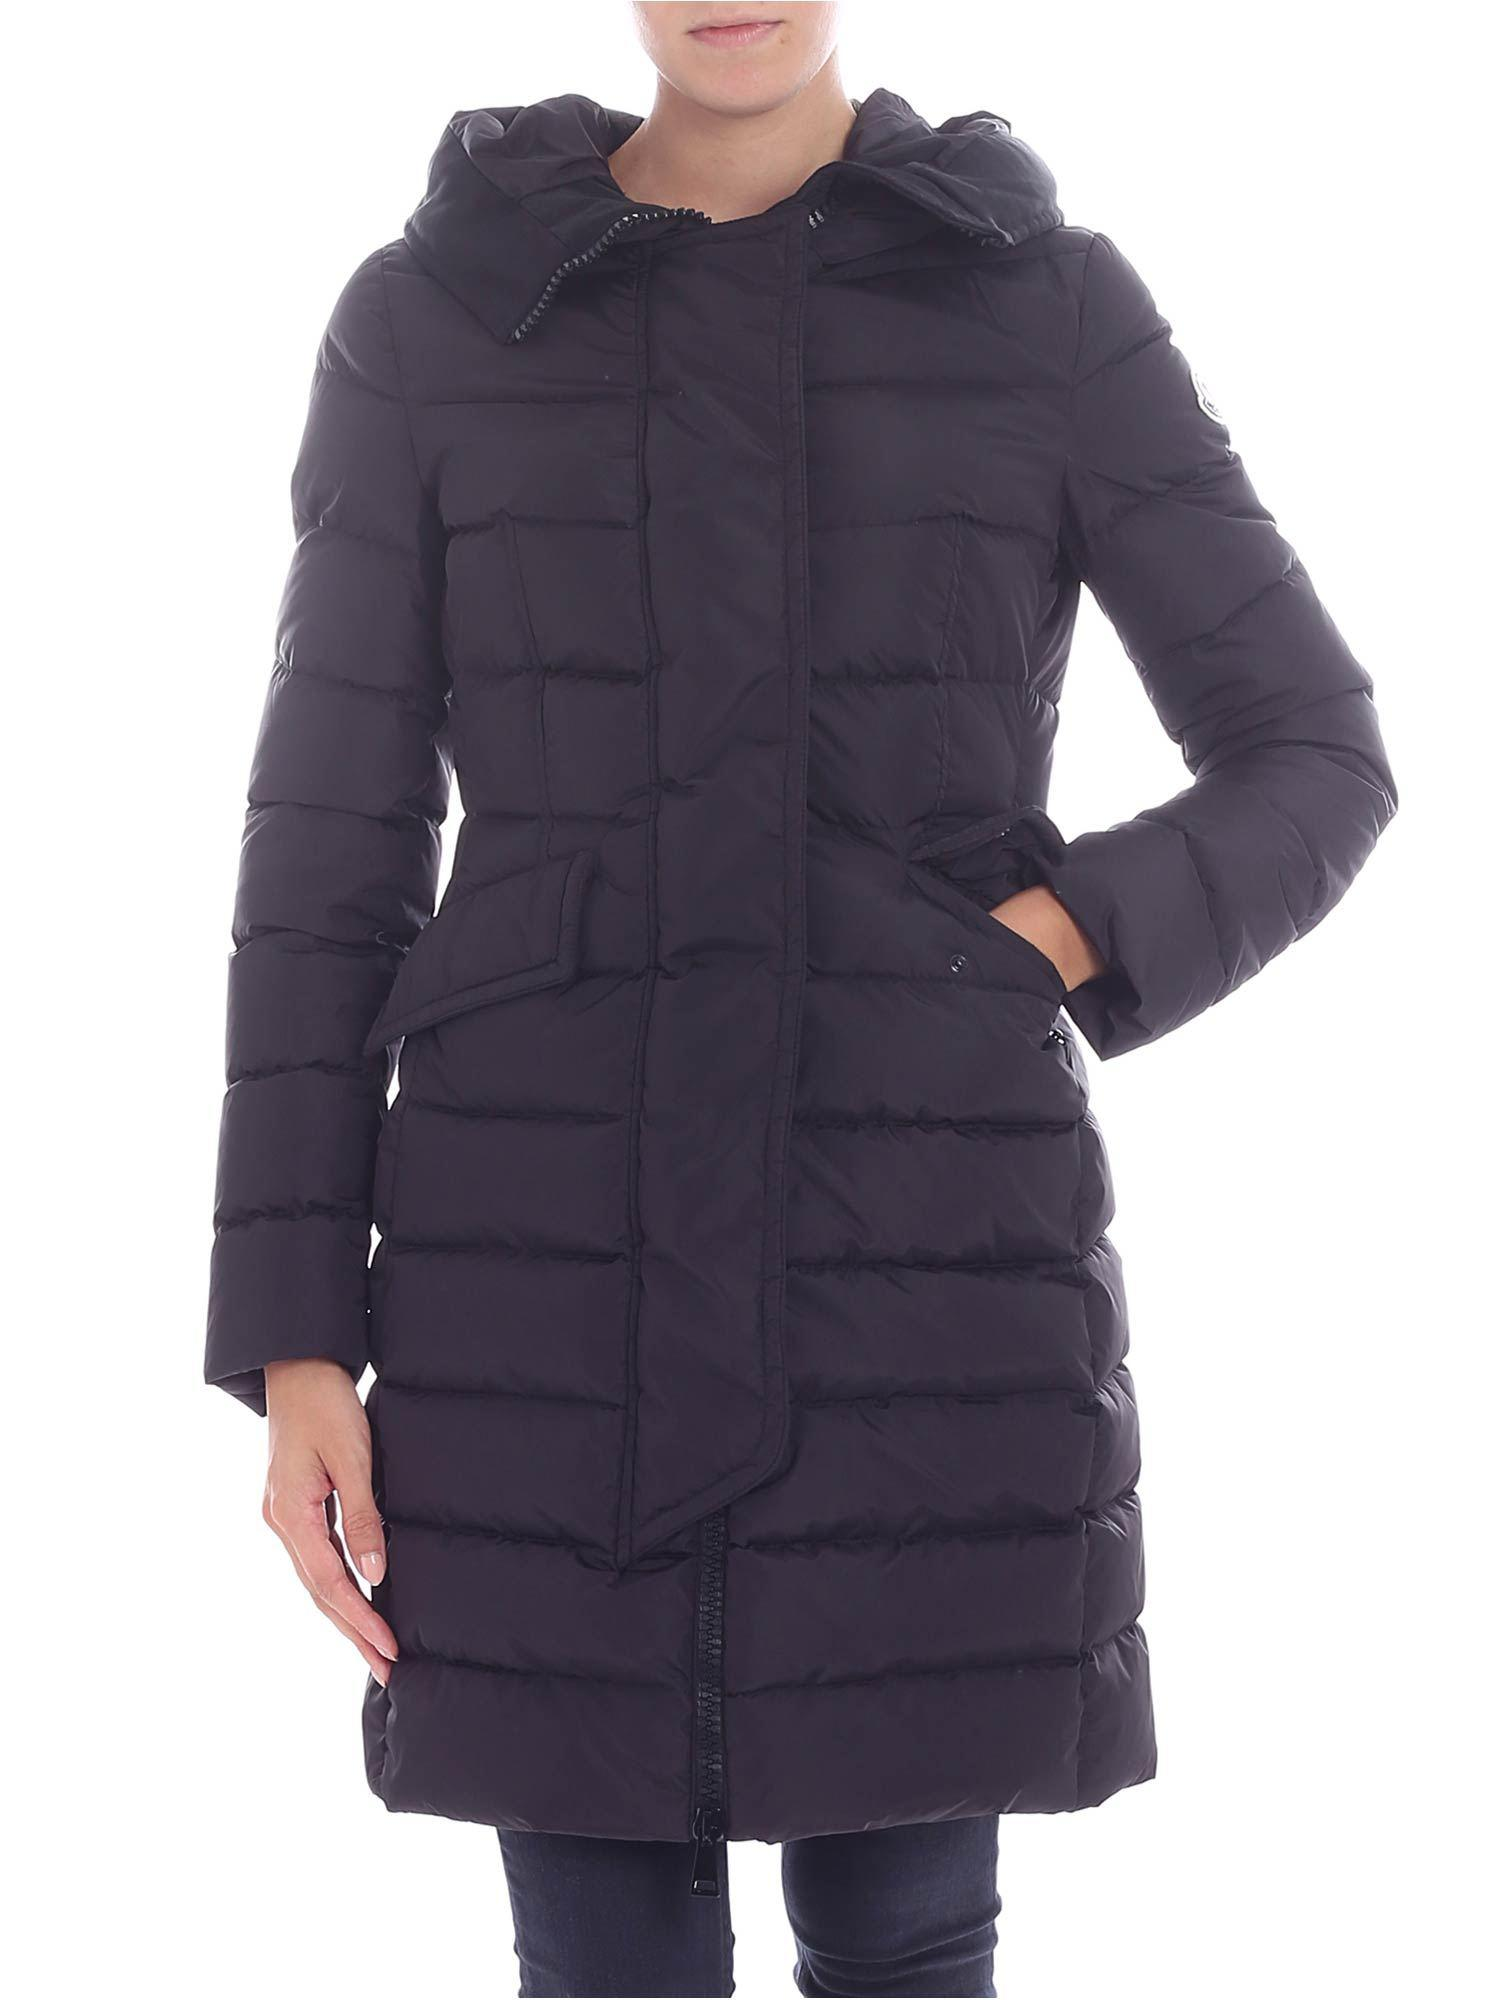 02c7bb014 Lyst - Moncler Black Quilted Jacket With Logo in Black